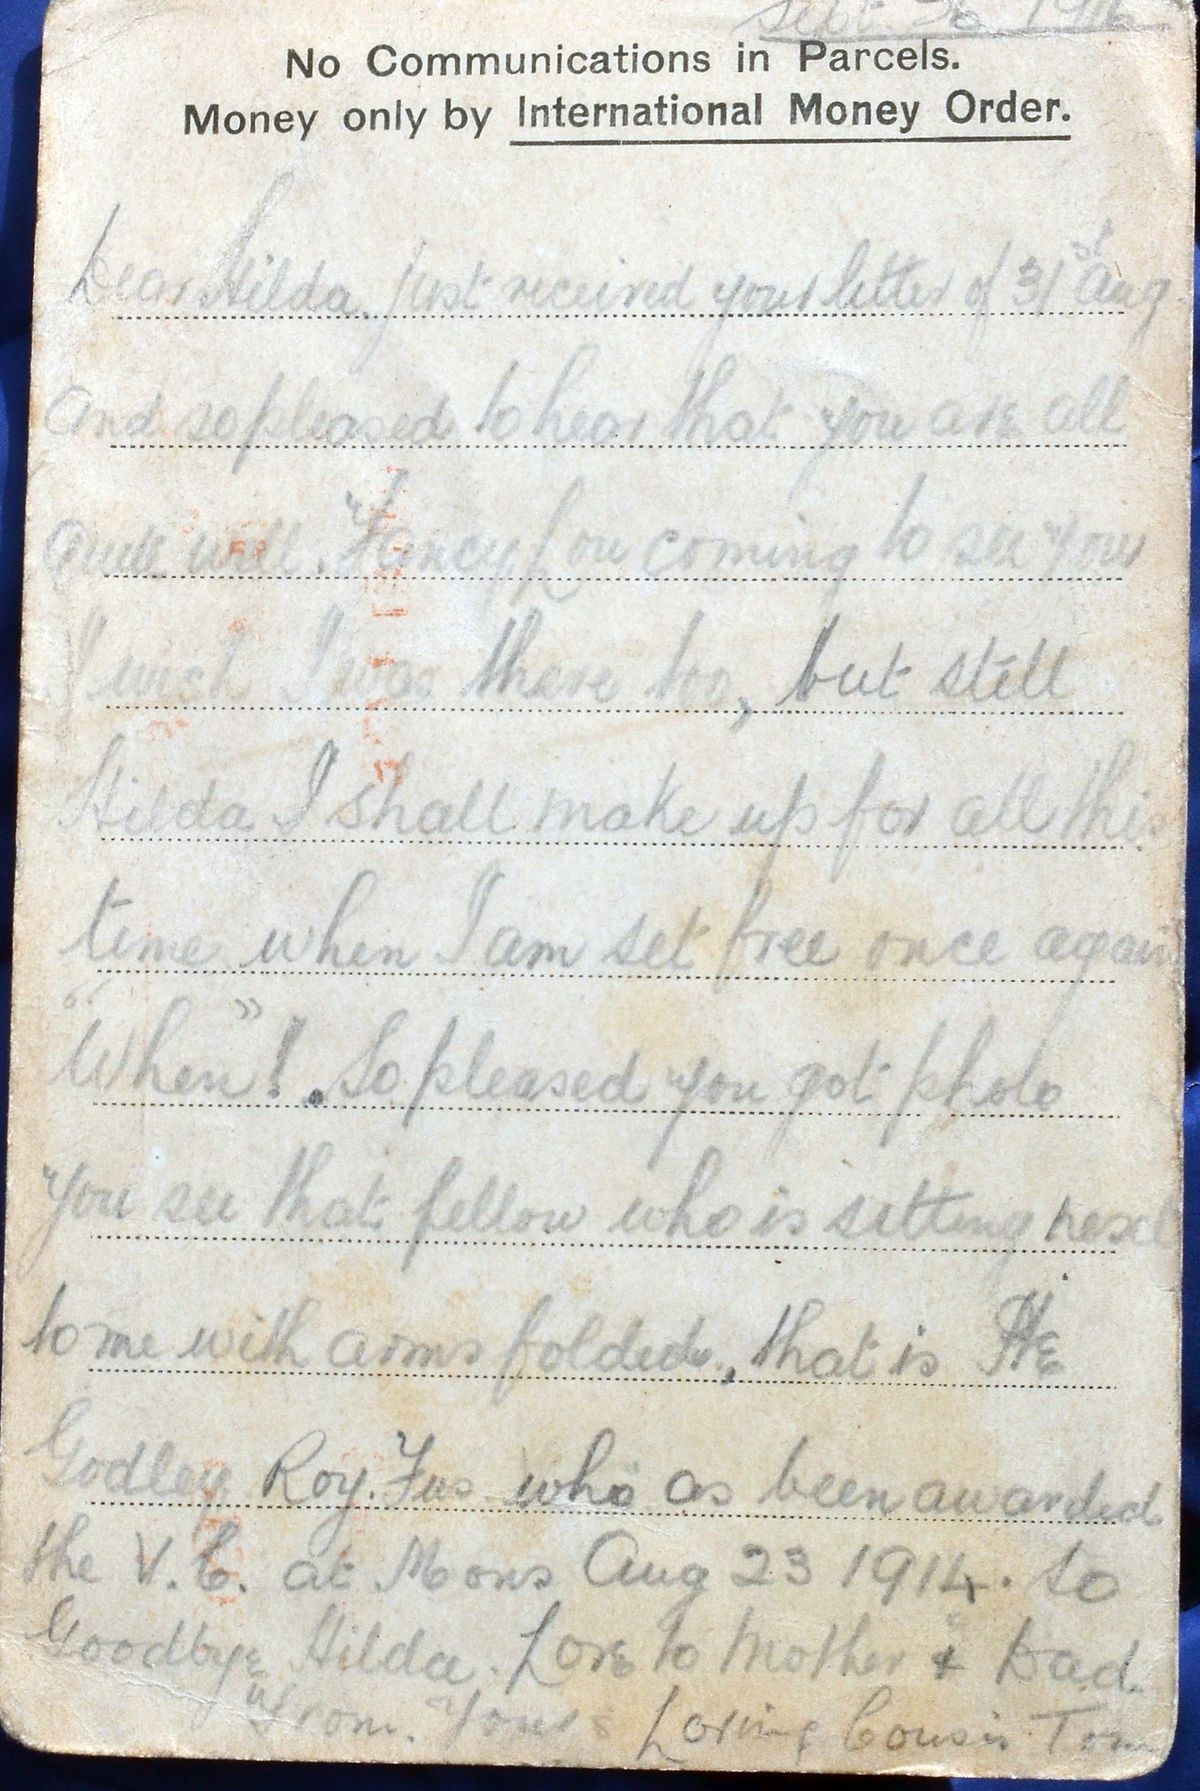 In this card from September 1916 Tom tells how he is rubbing shoulders with a winner of the Victoria Cross.